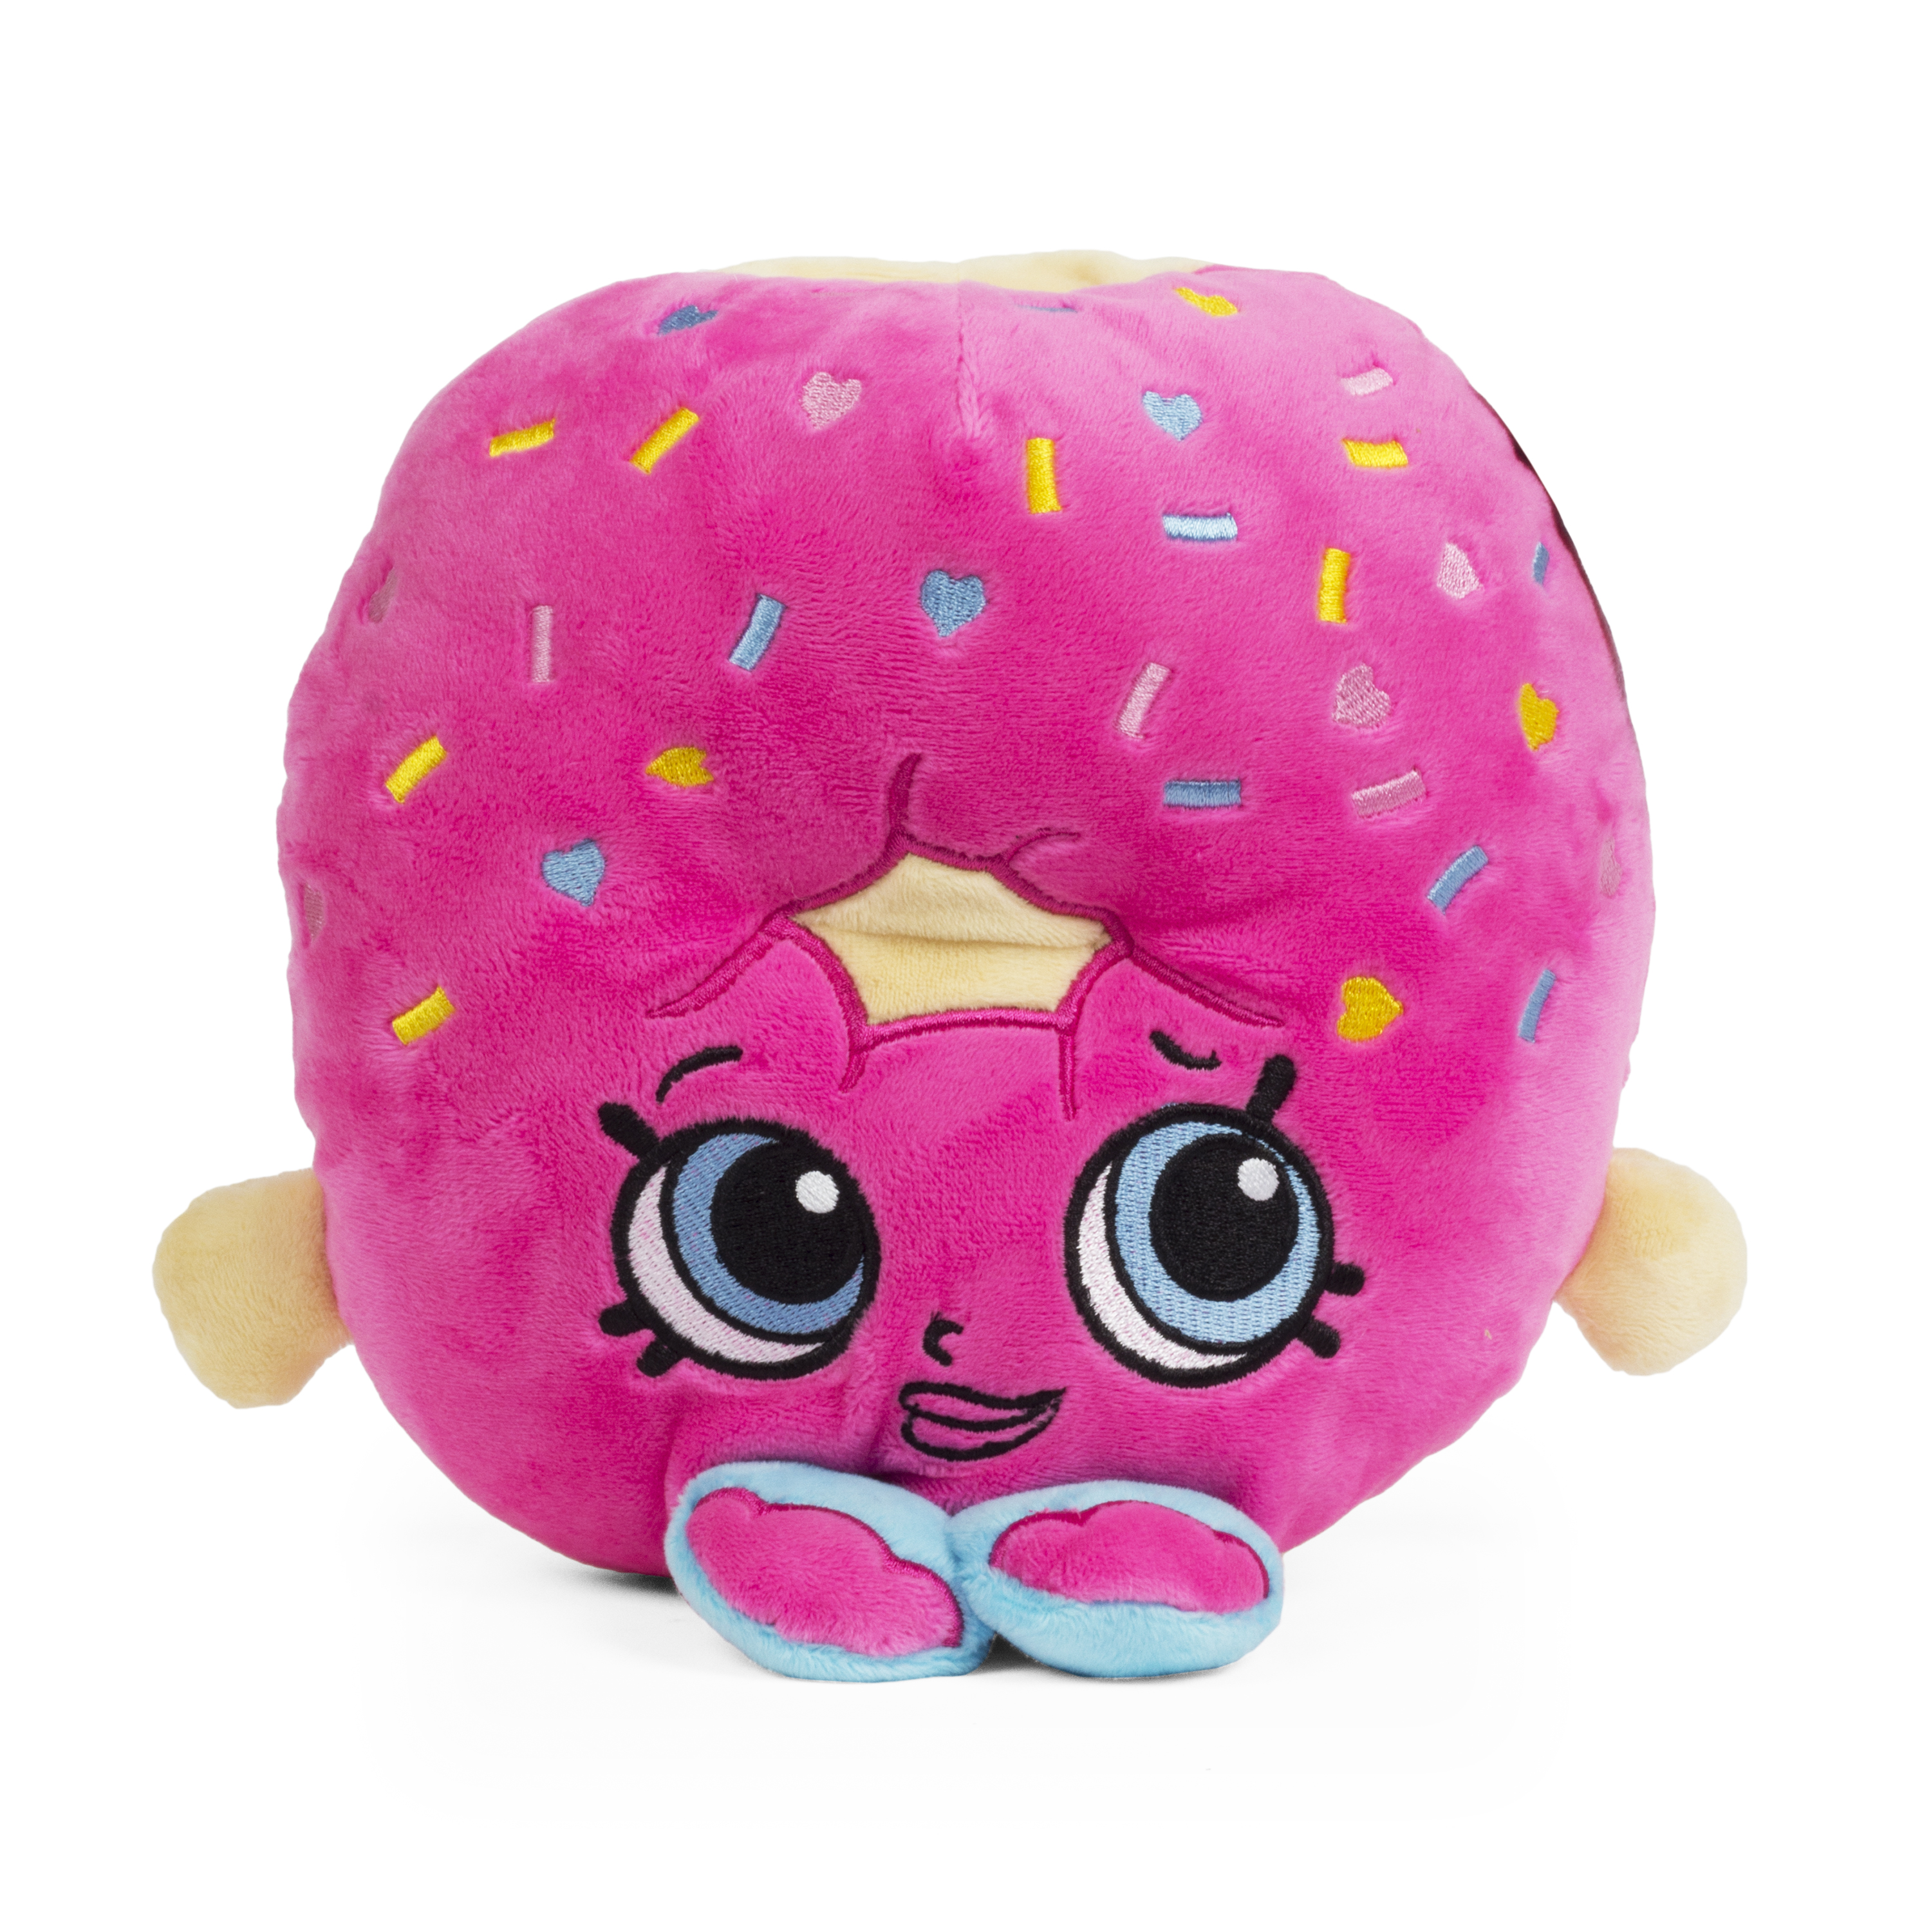 Shopkins Plush Donut Bank